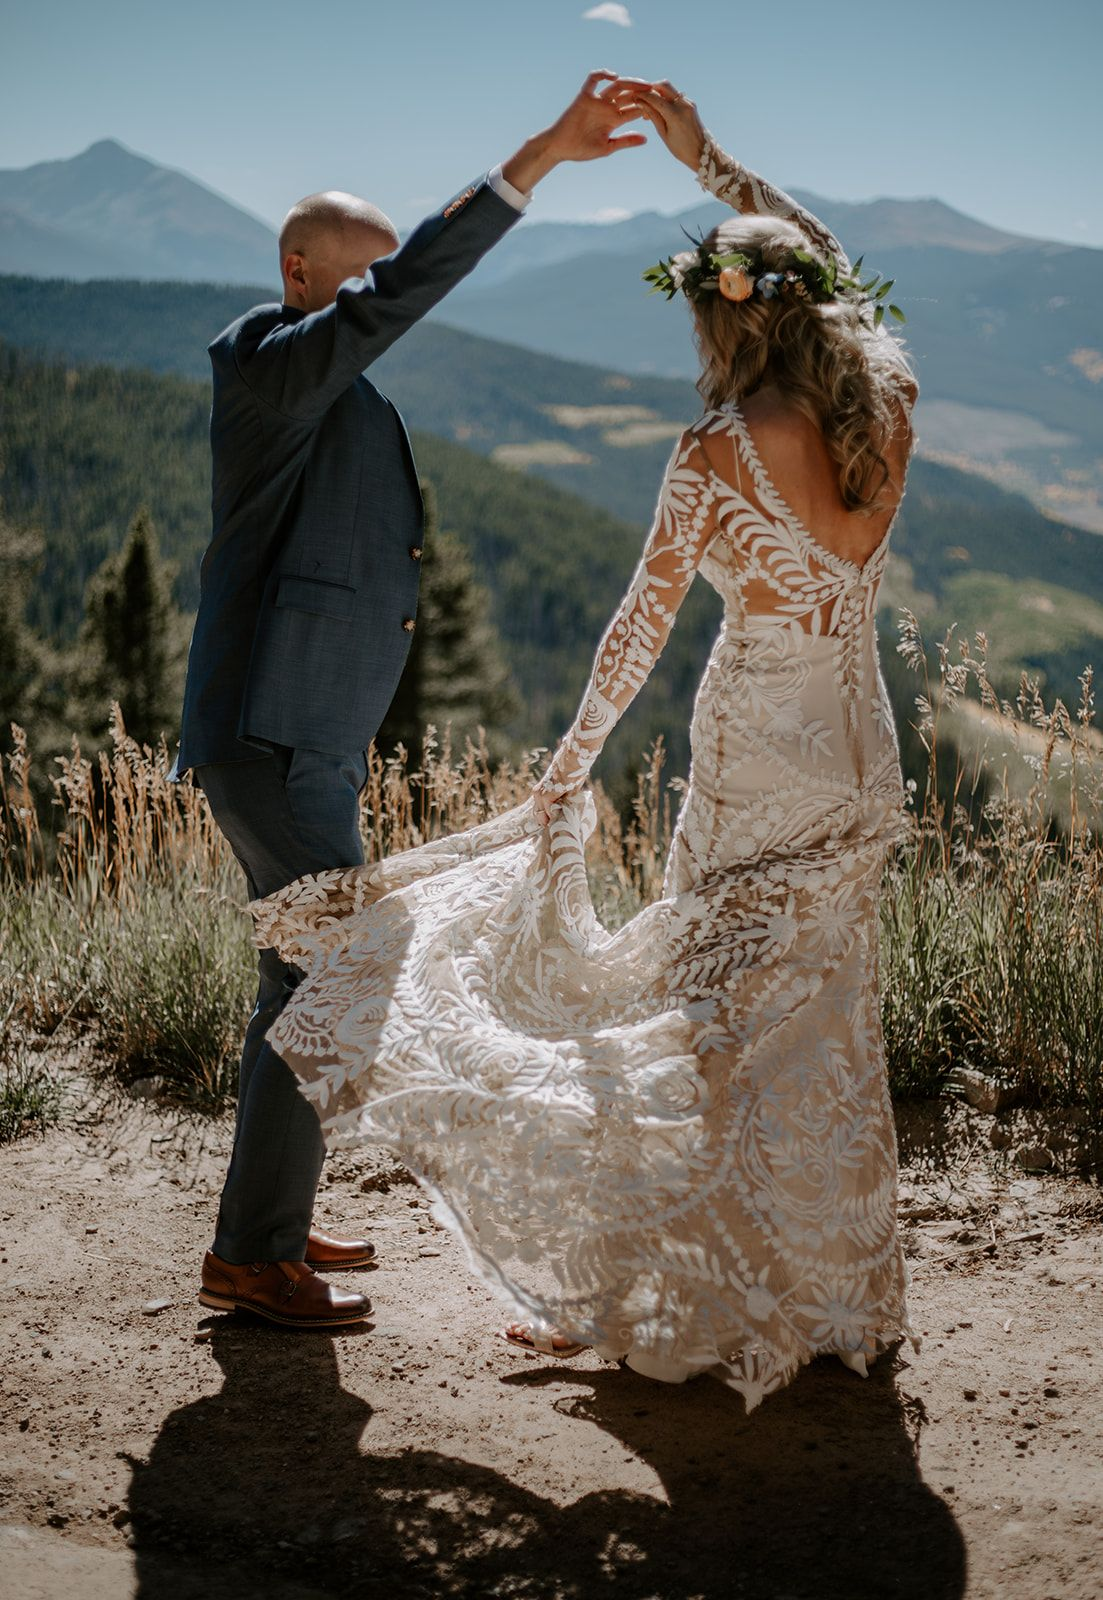 Bohemian Mountaintop Wedding Ceremony In Vail Colorado Real Wedding Mountain Top Wedding Mountain Bride Mountain Wedding Colorado